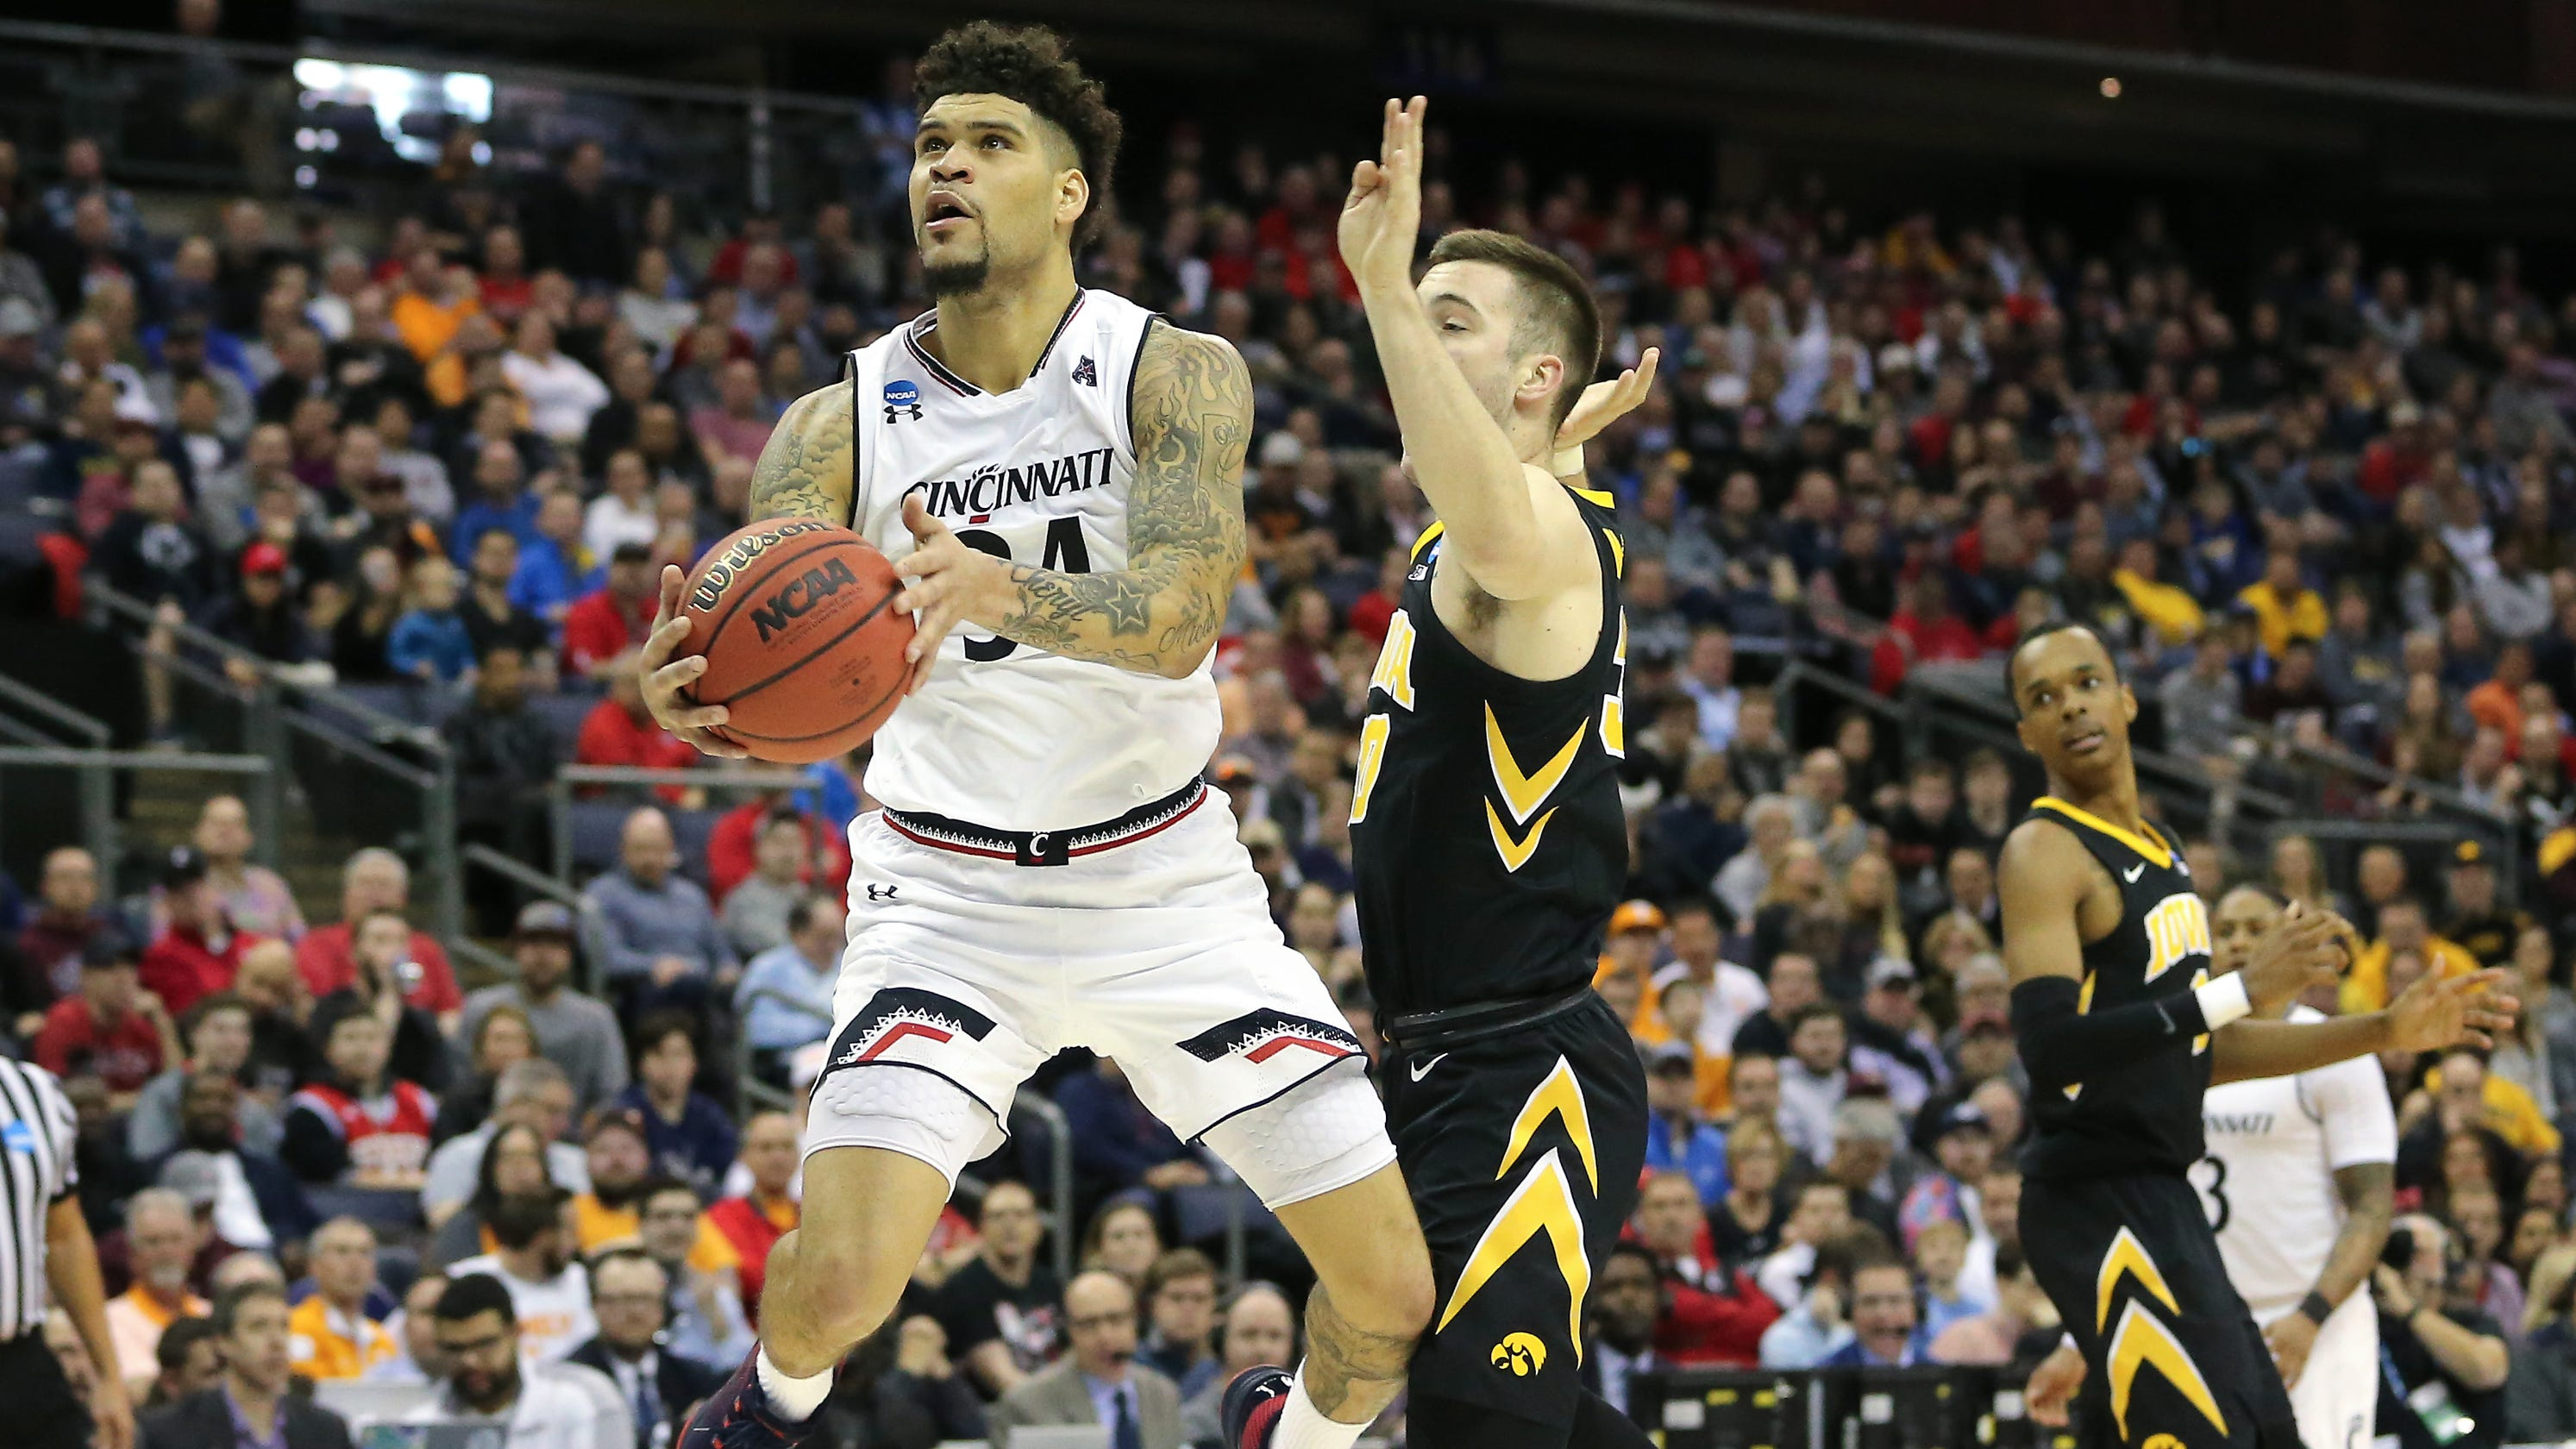 Uc Calendar 2020 UC basketball: Dates for 2019 2020 non conference games set